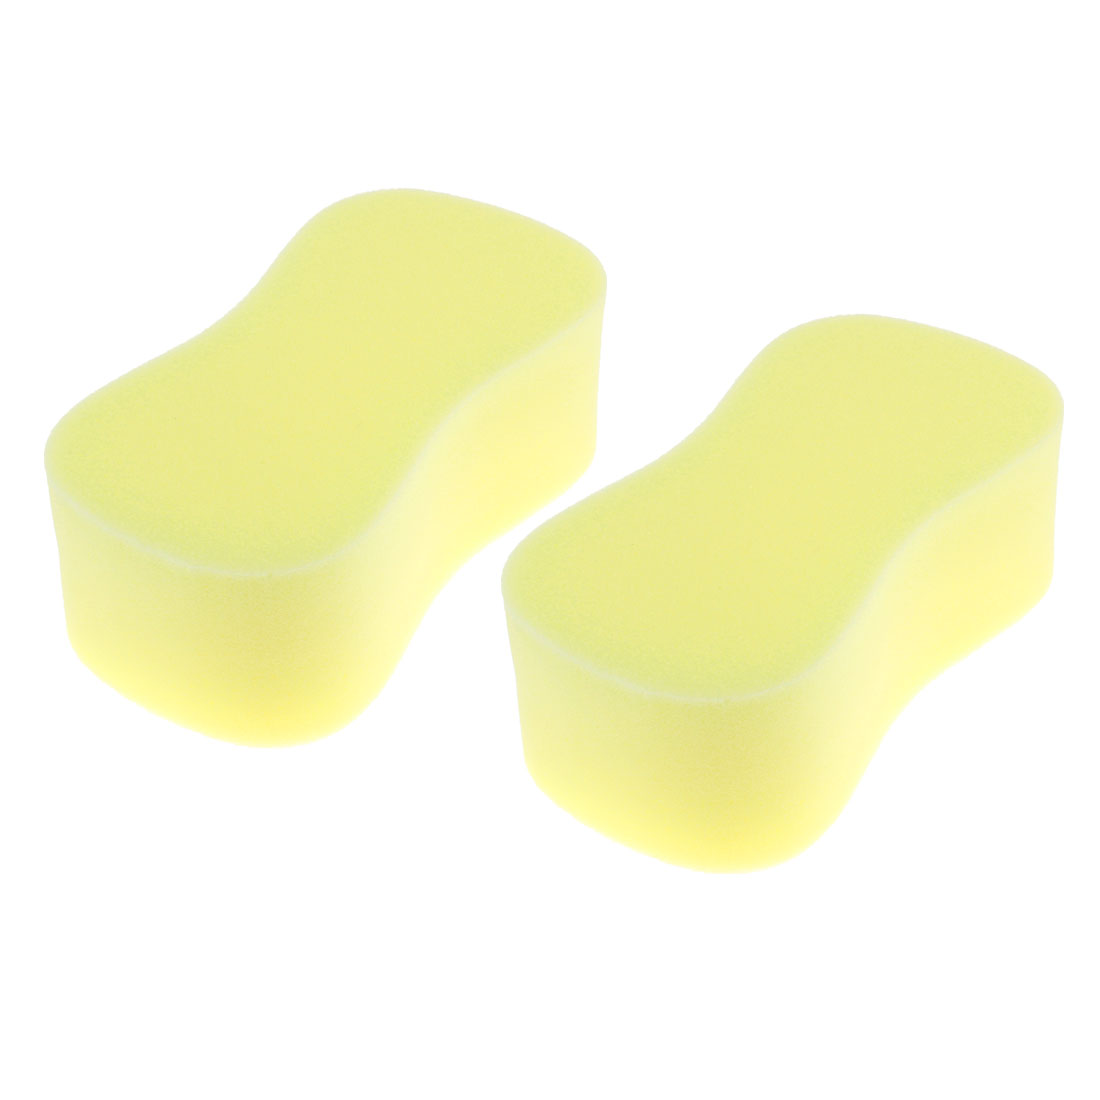 Multipurpose Yellow Car Clean Wash Pad Washing Sponge Cleaning Tool 2pcs